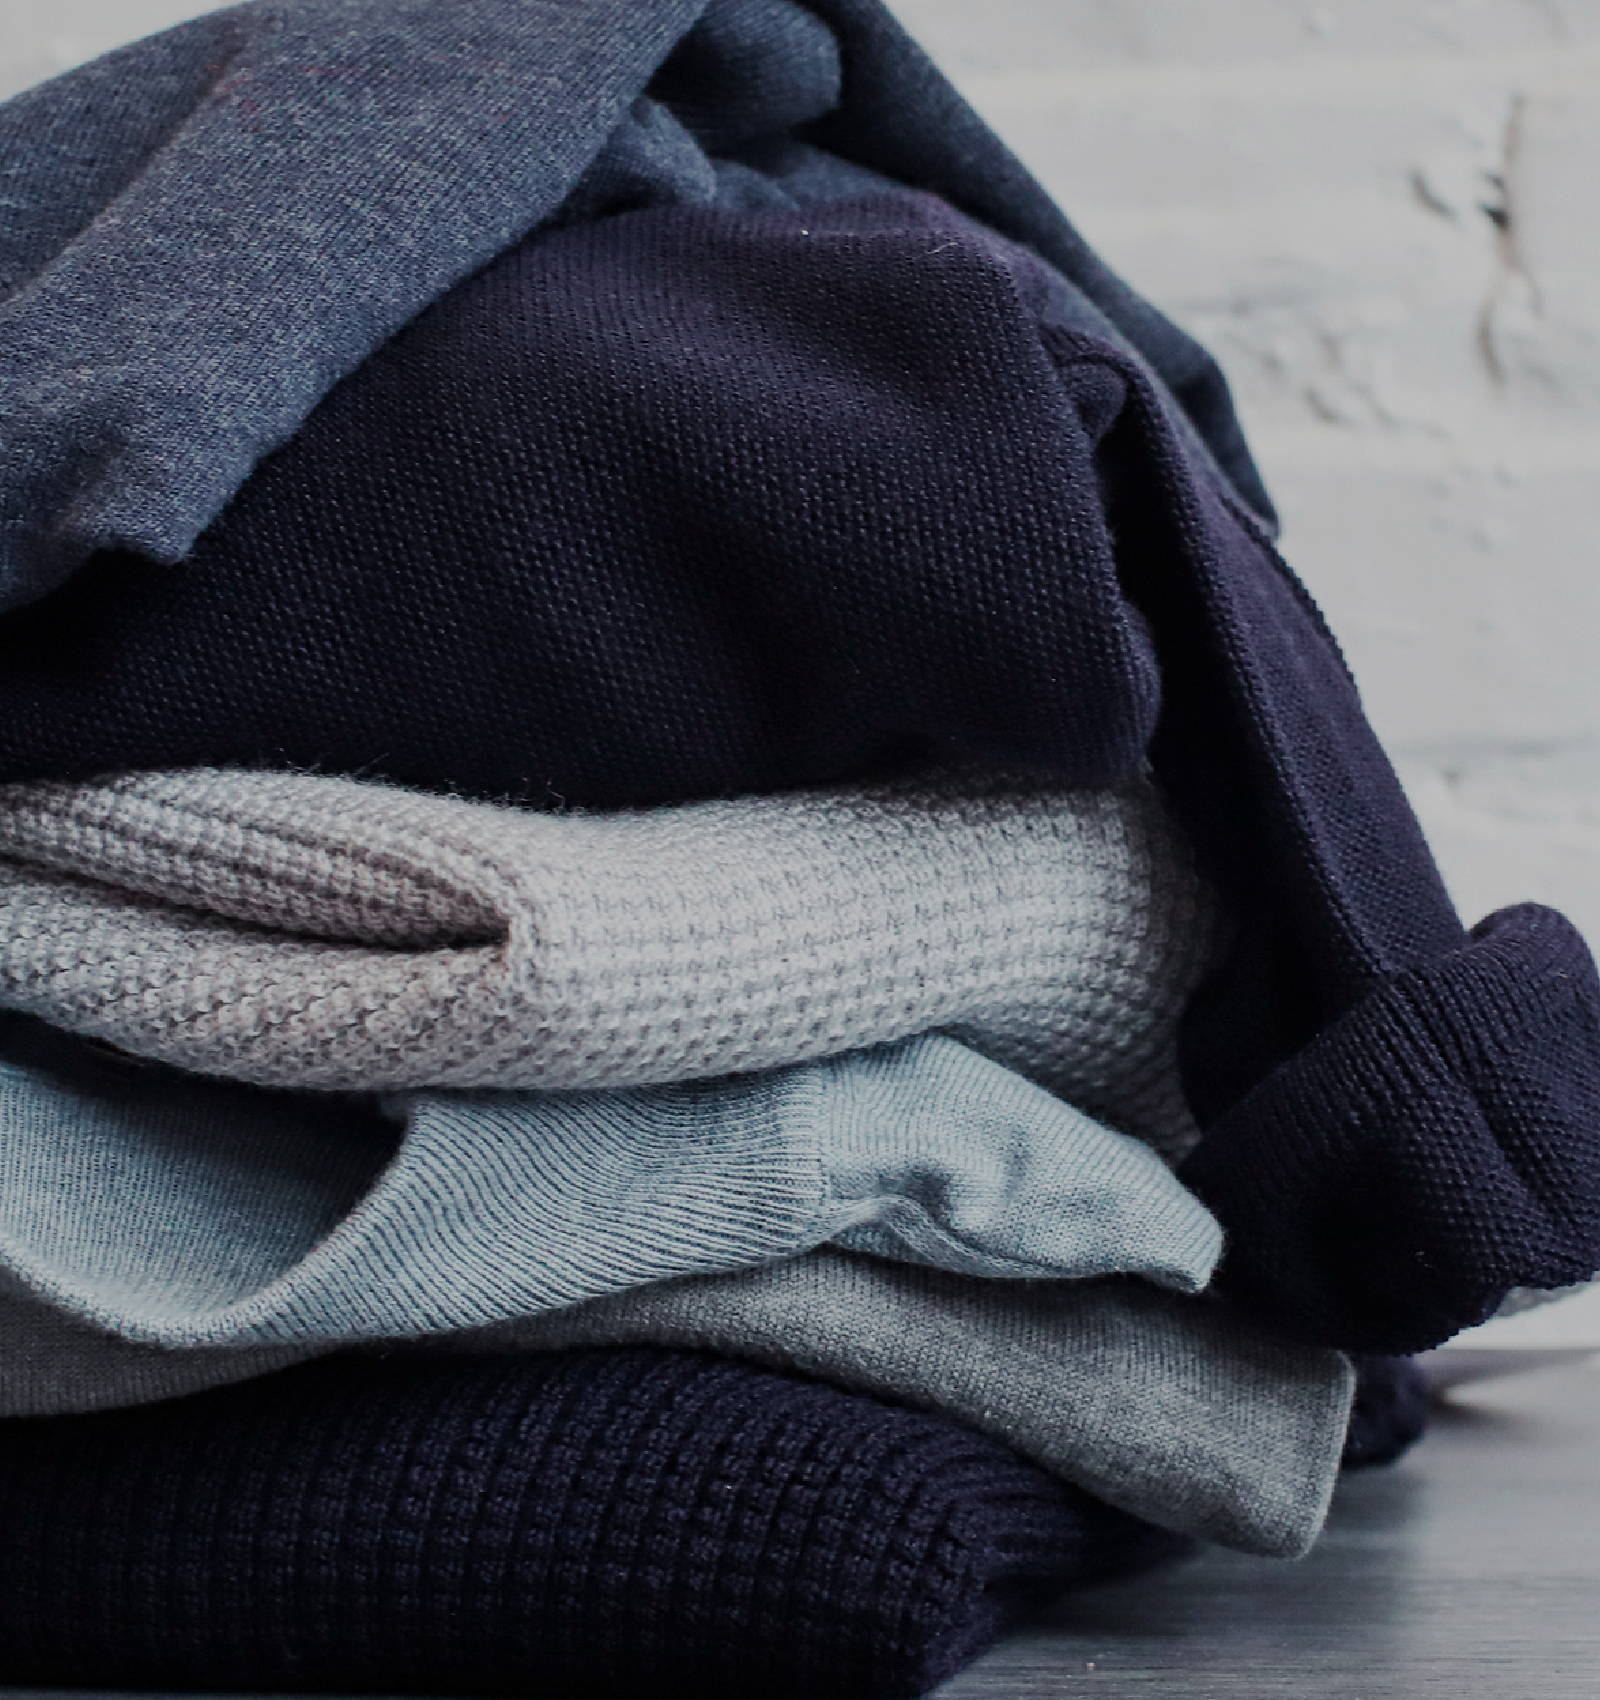 Stack of blue and gray Ledbury sweaters.